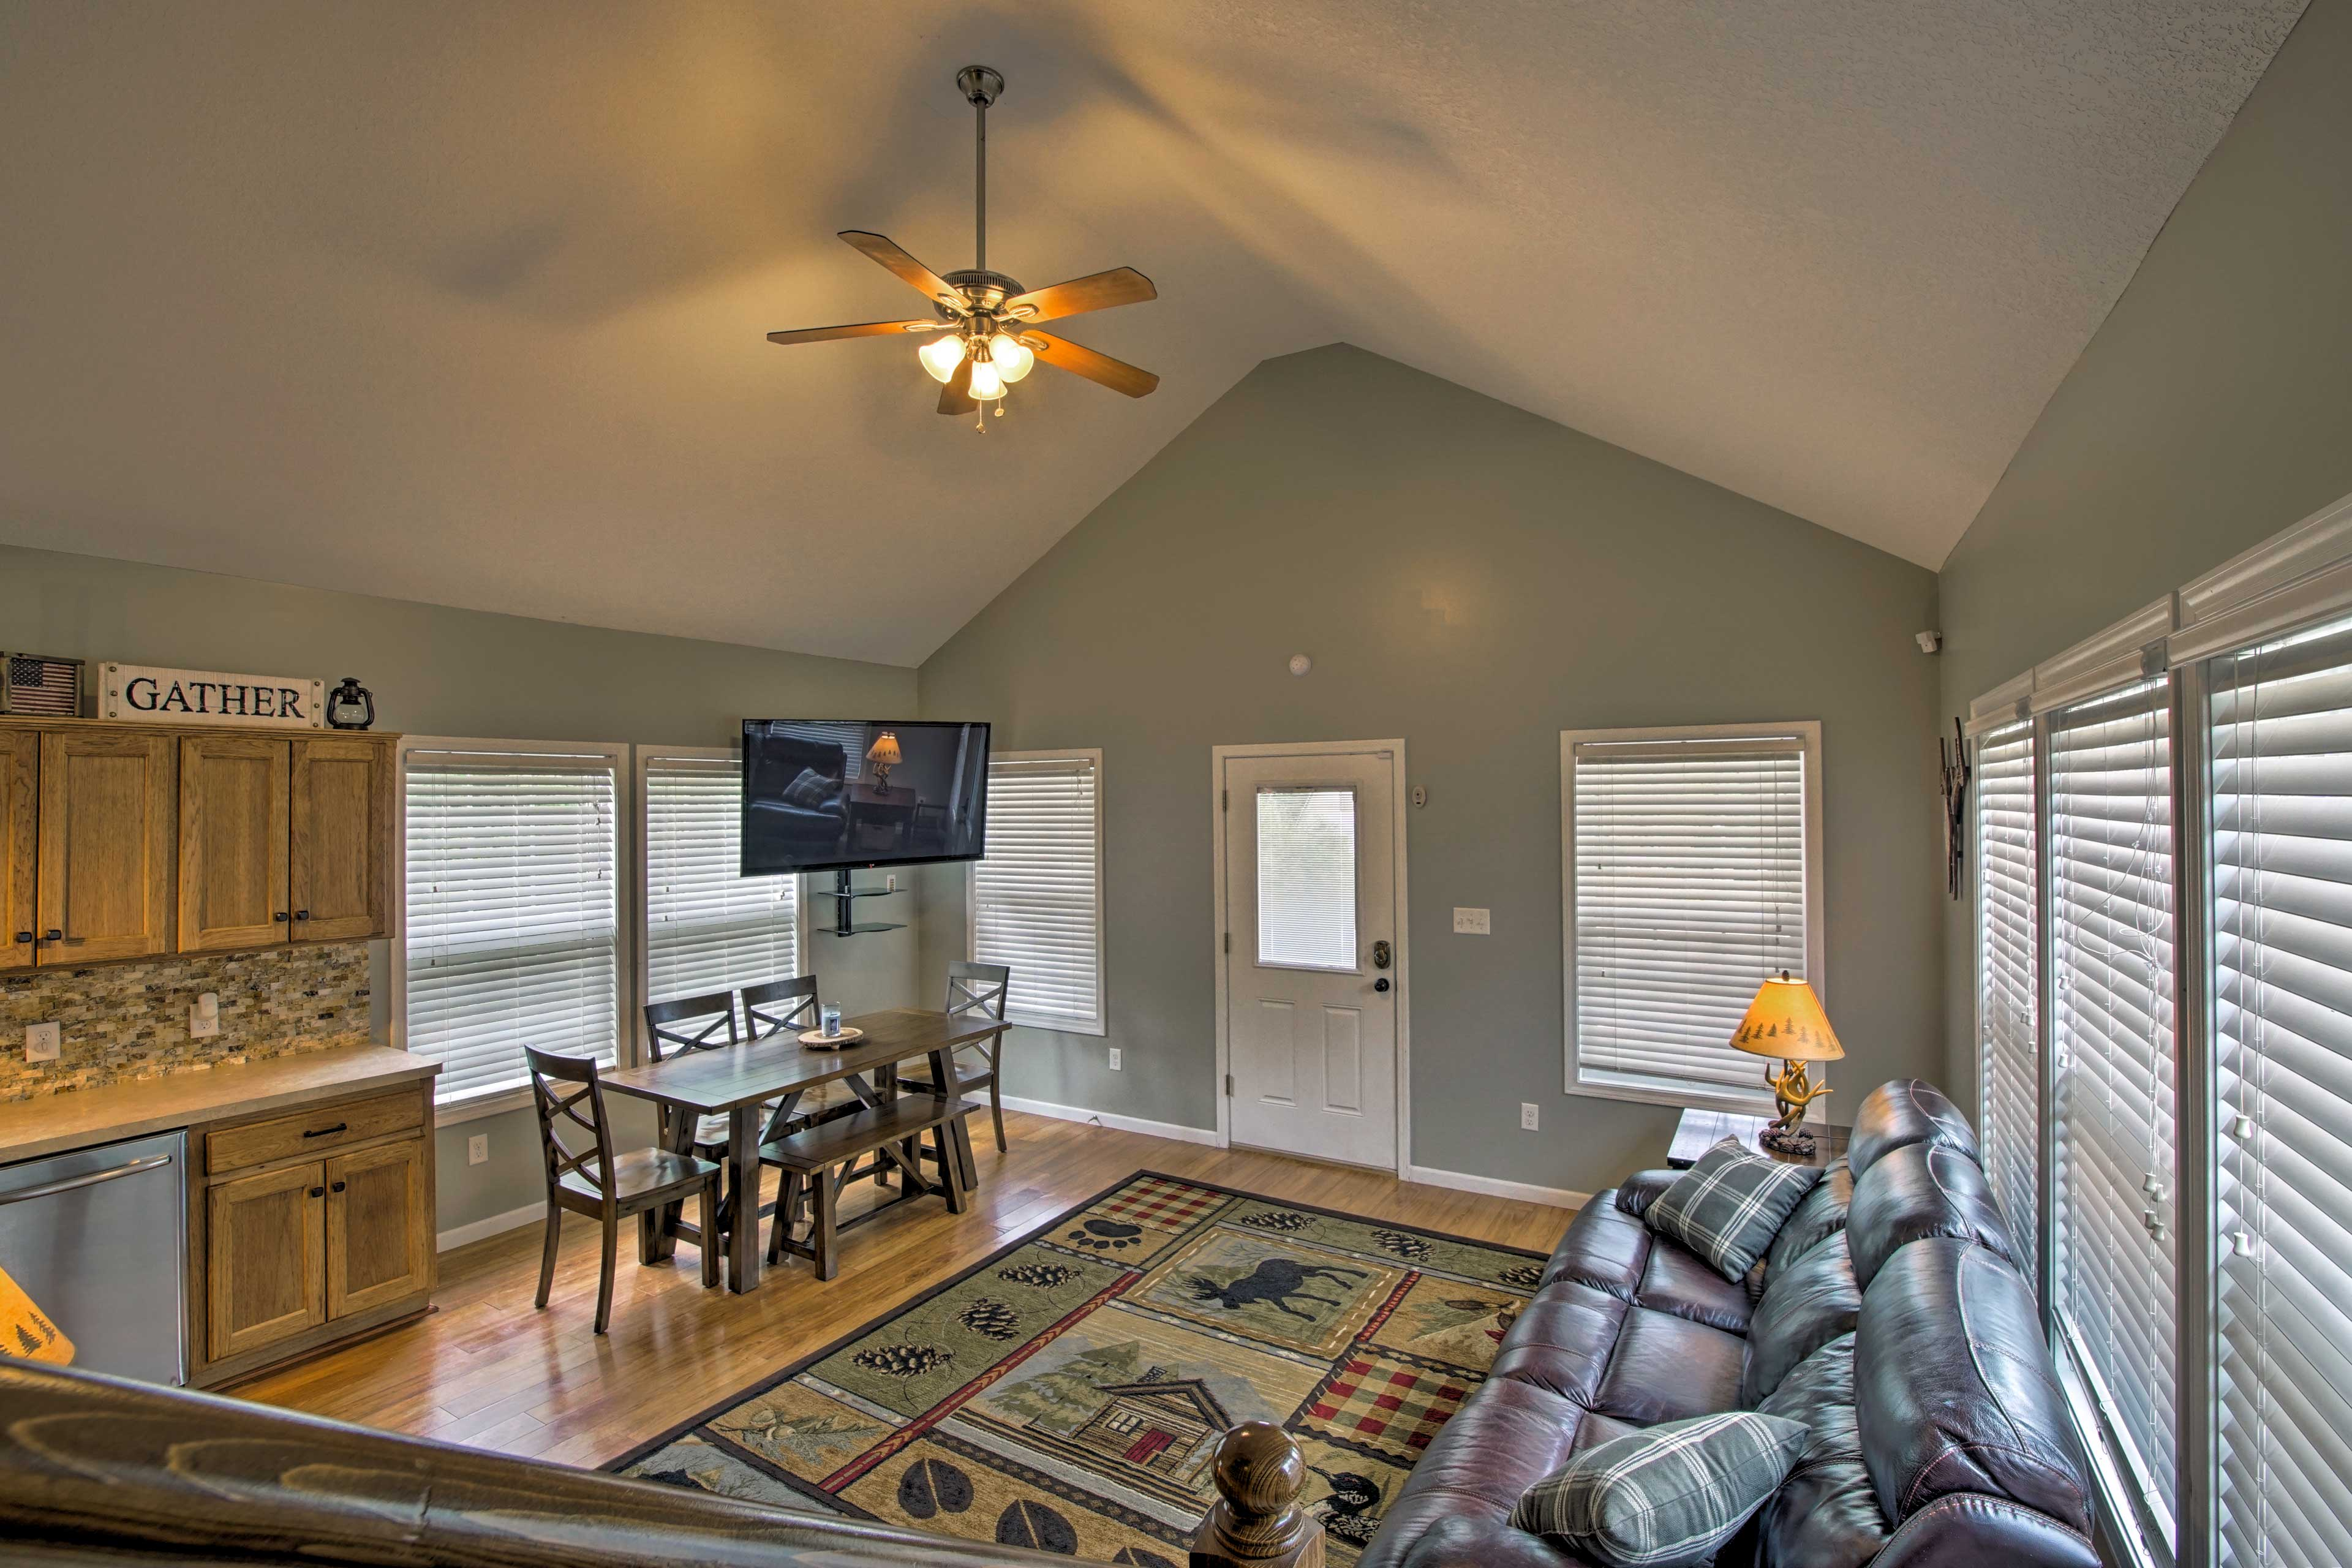 The spacious living rom features vaulted ceilings and hardwood floors.